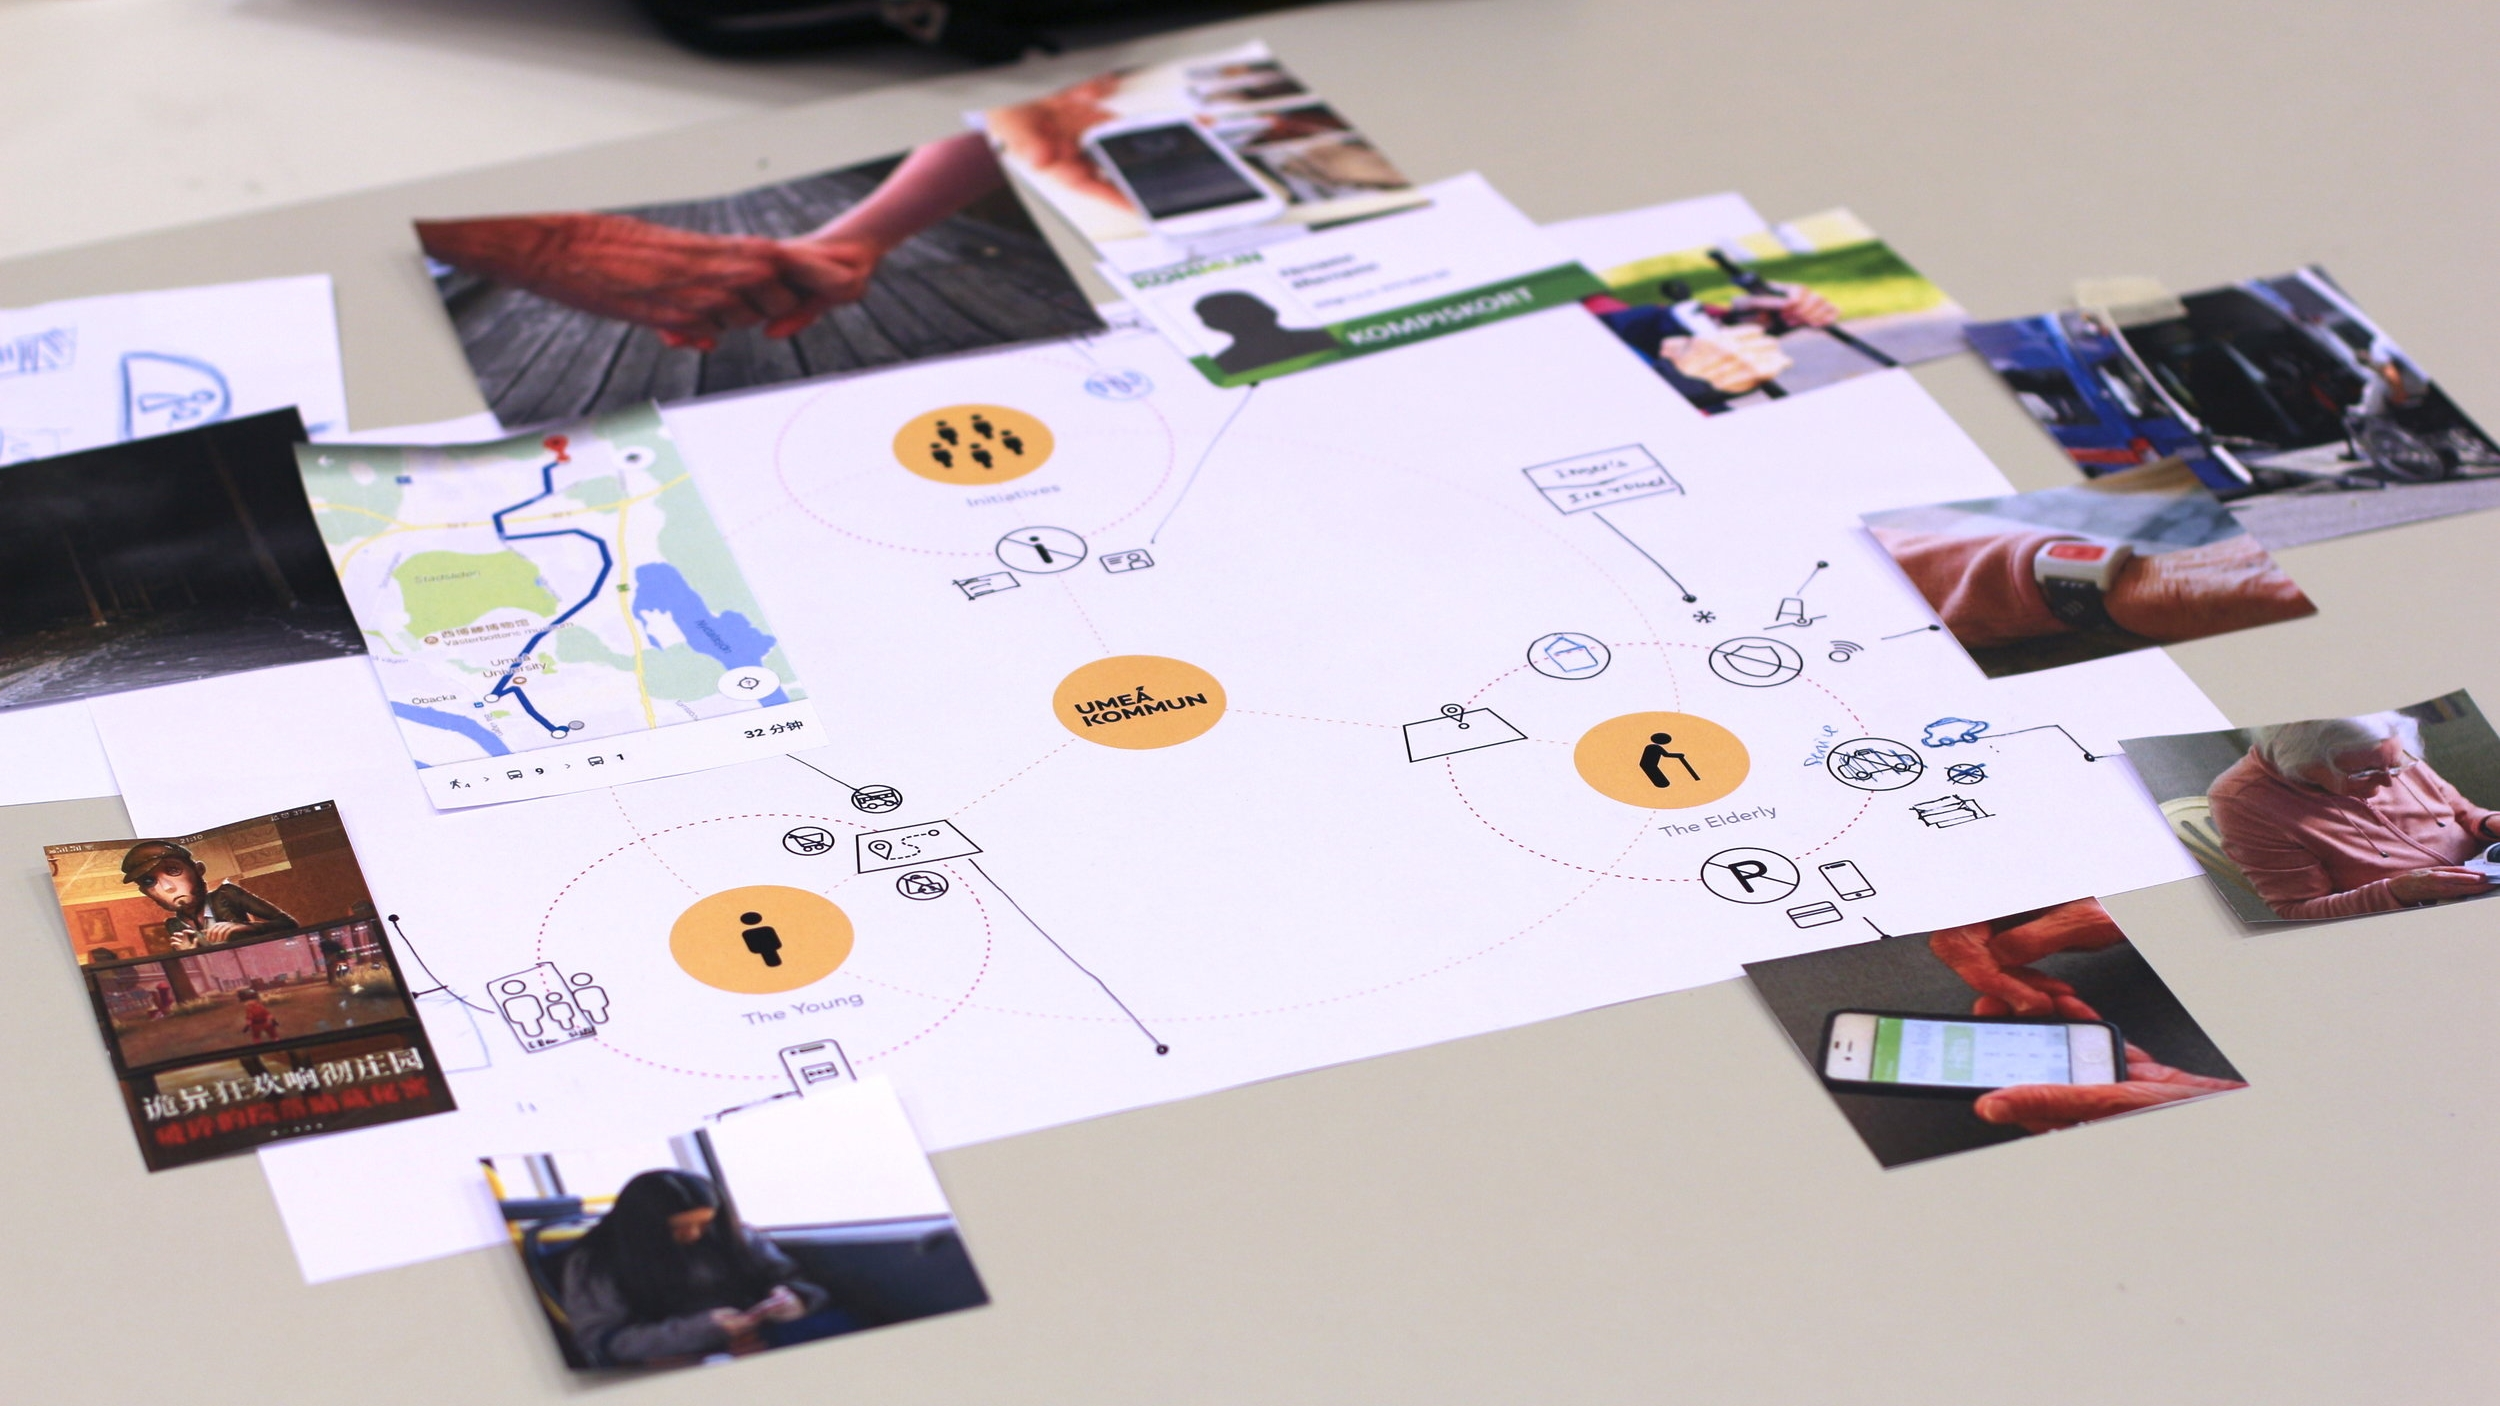 Designing a VISUAL BRIEF that shows the research in context (where action is happening)